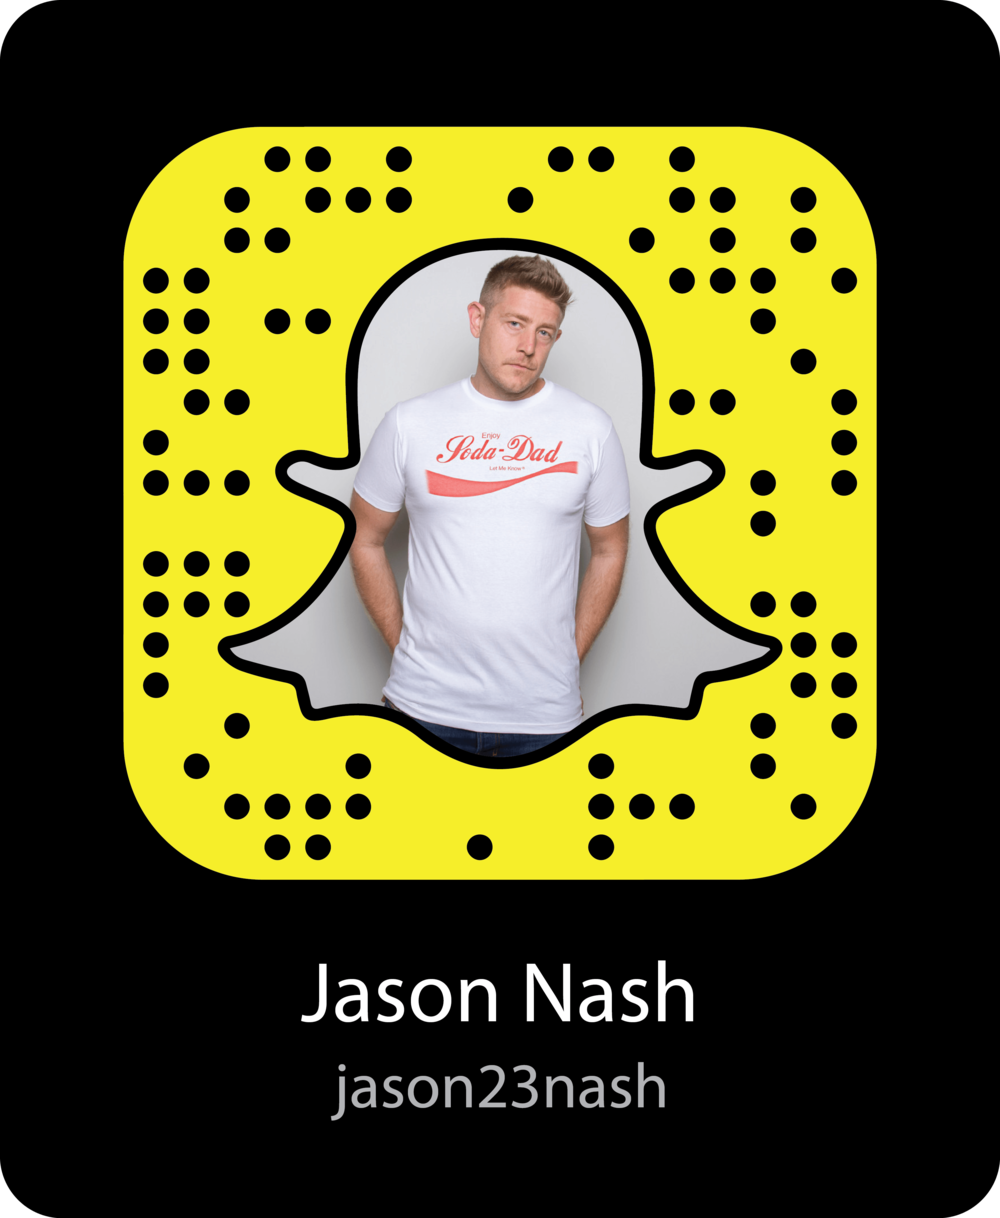 jason-nash-vine-celebrity-snapchat-snapcode